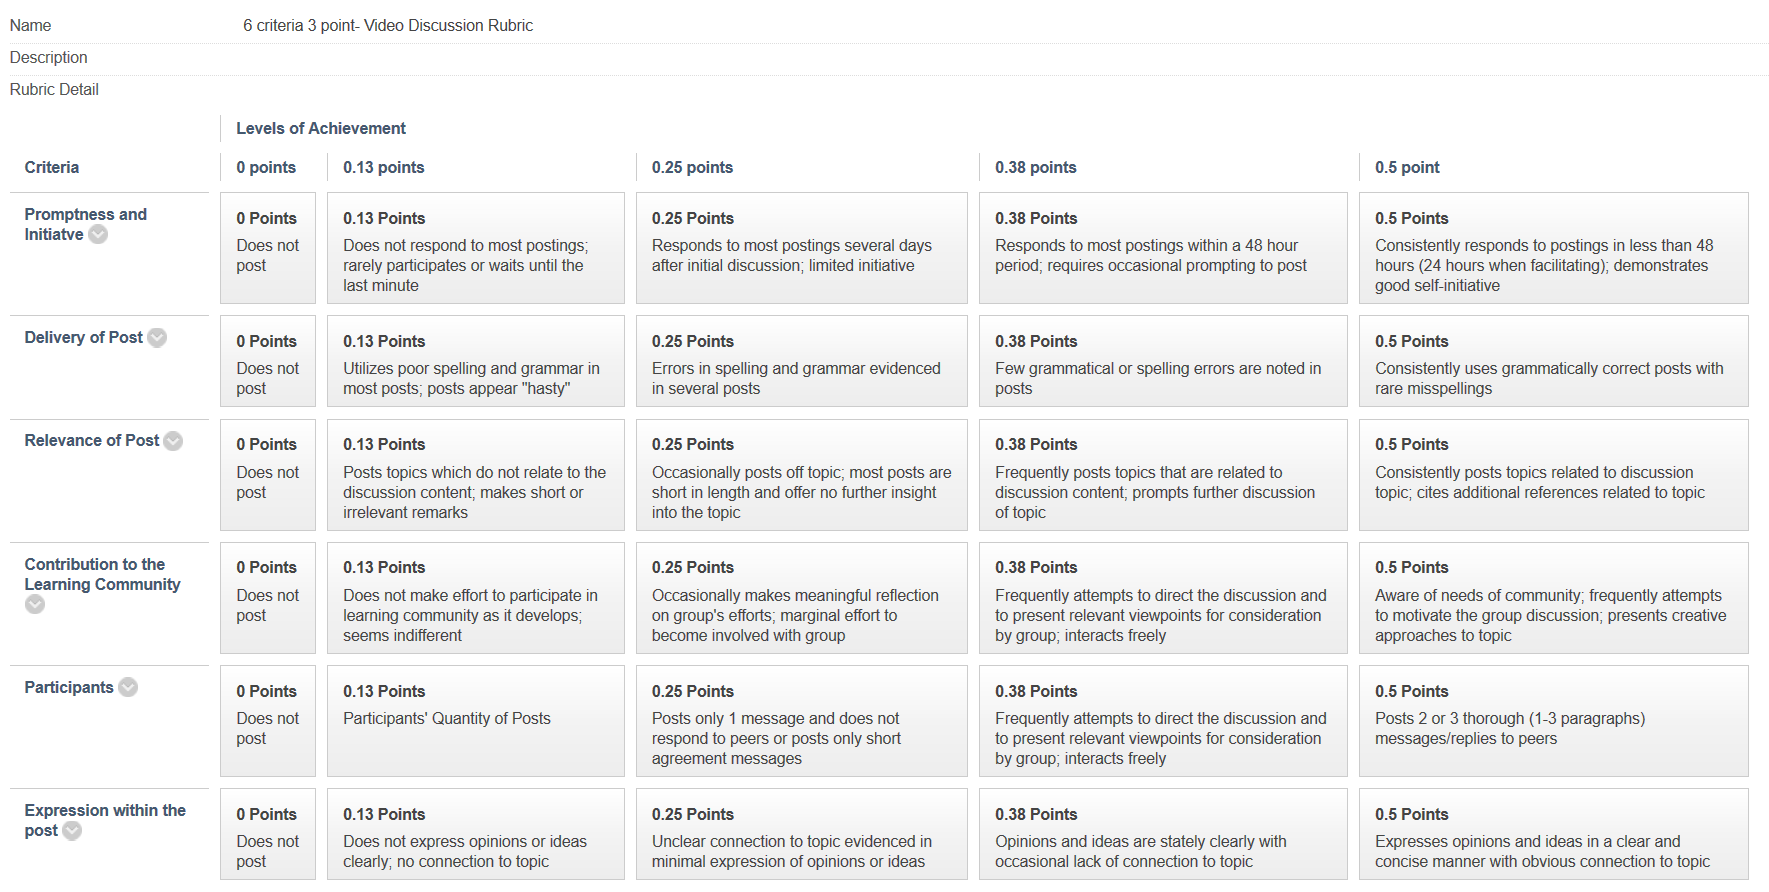 Quality matters essentials qme fiuonline video discussion rubric example 1betcityfo Images